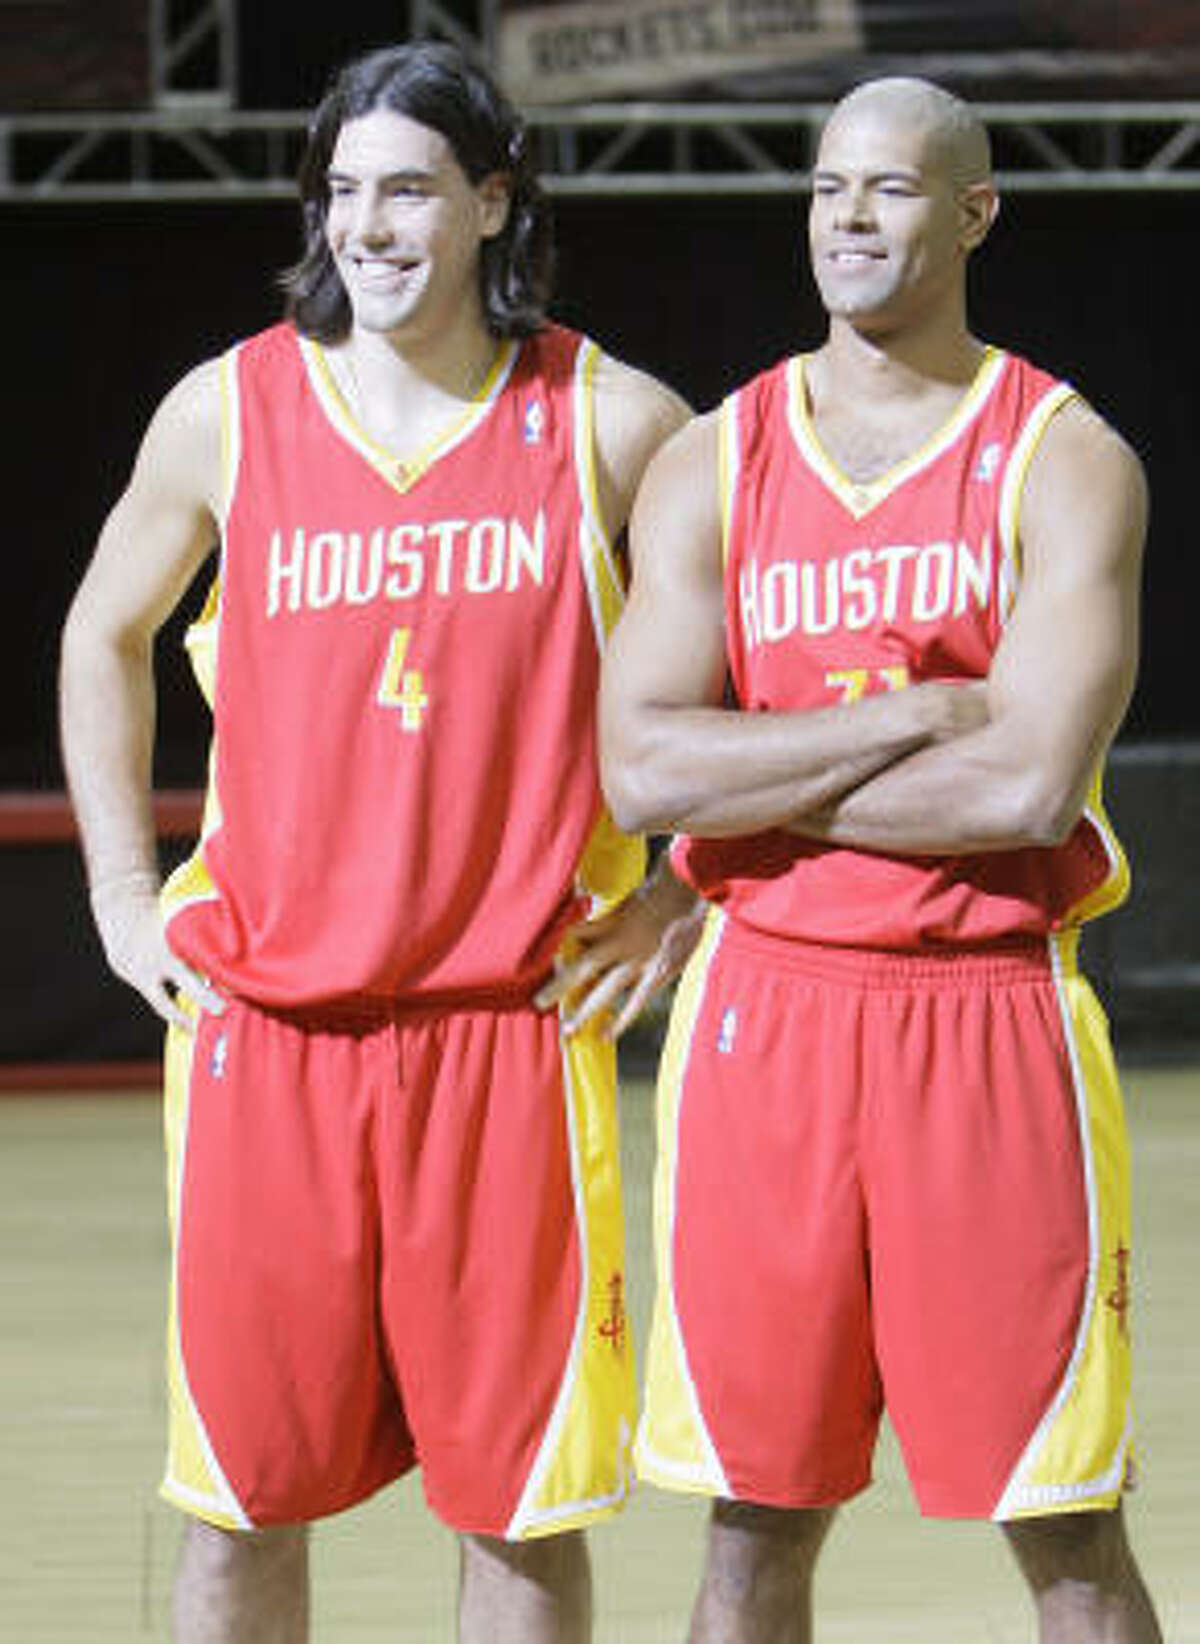 The Rockets' Luis Scola, left, and Shane Battier are lacking only rings to complete the championship look.